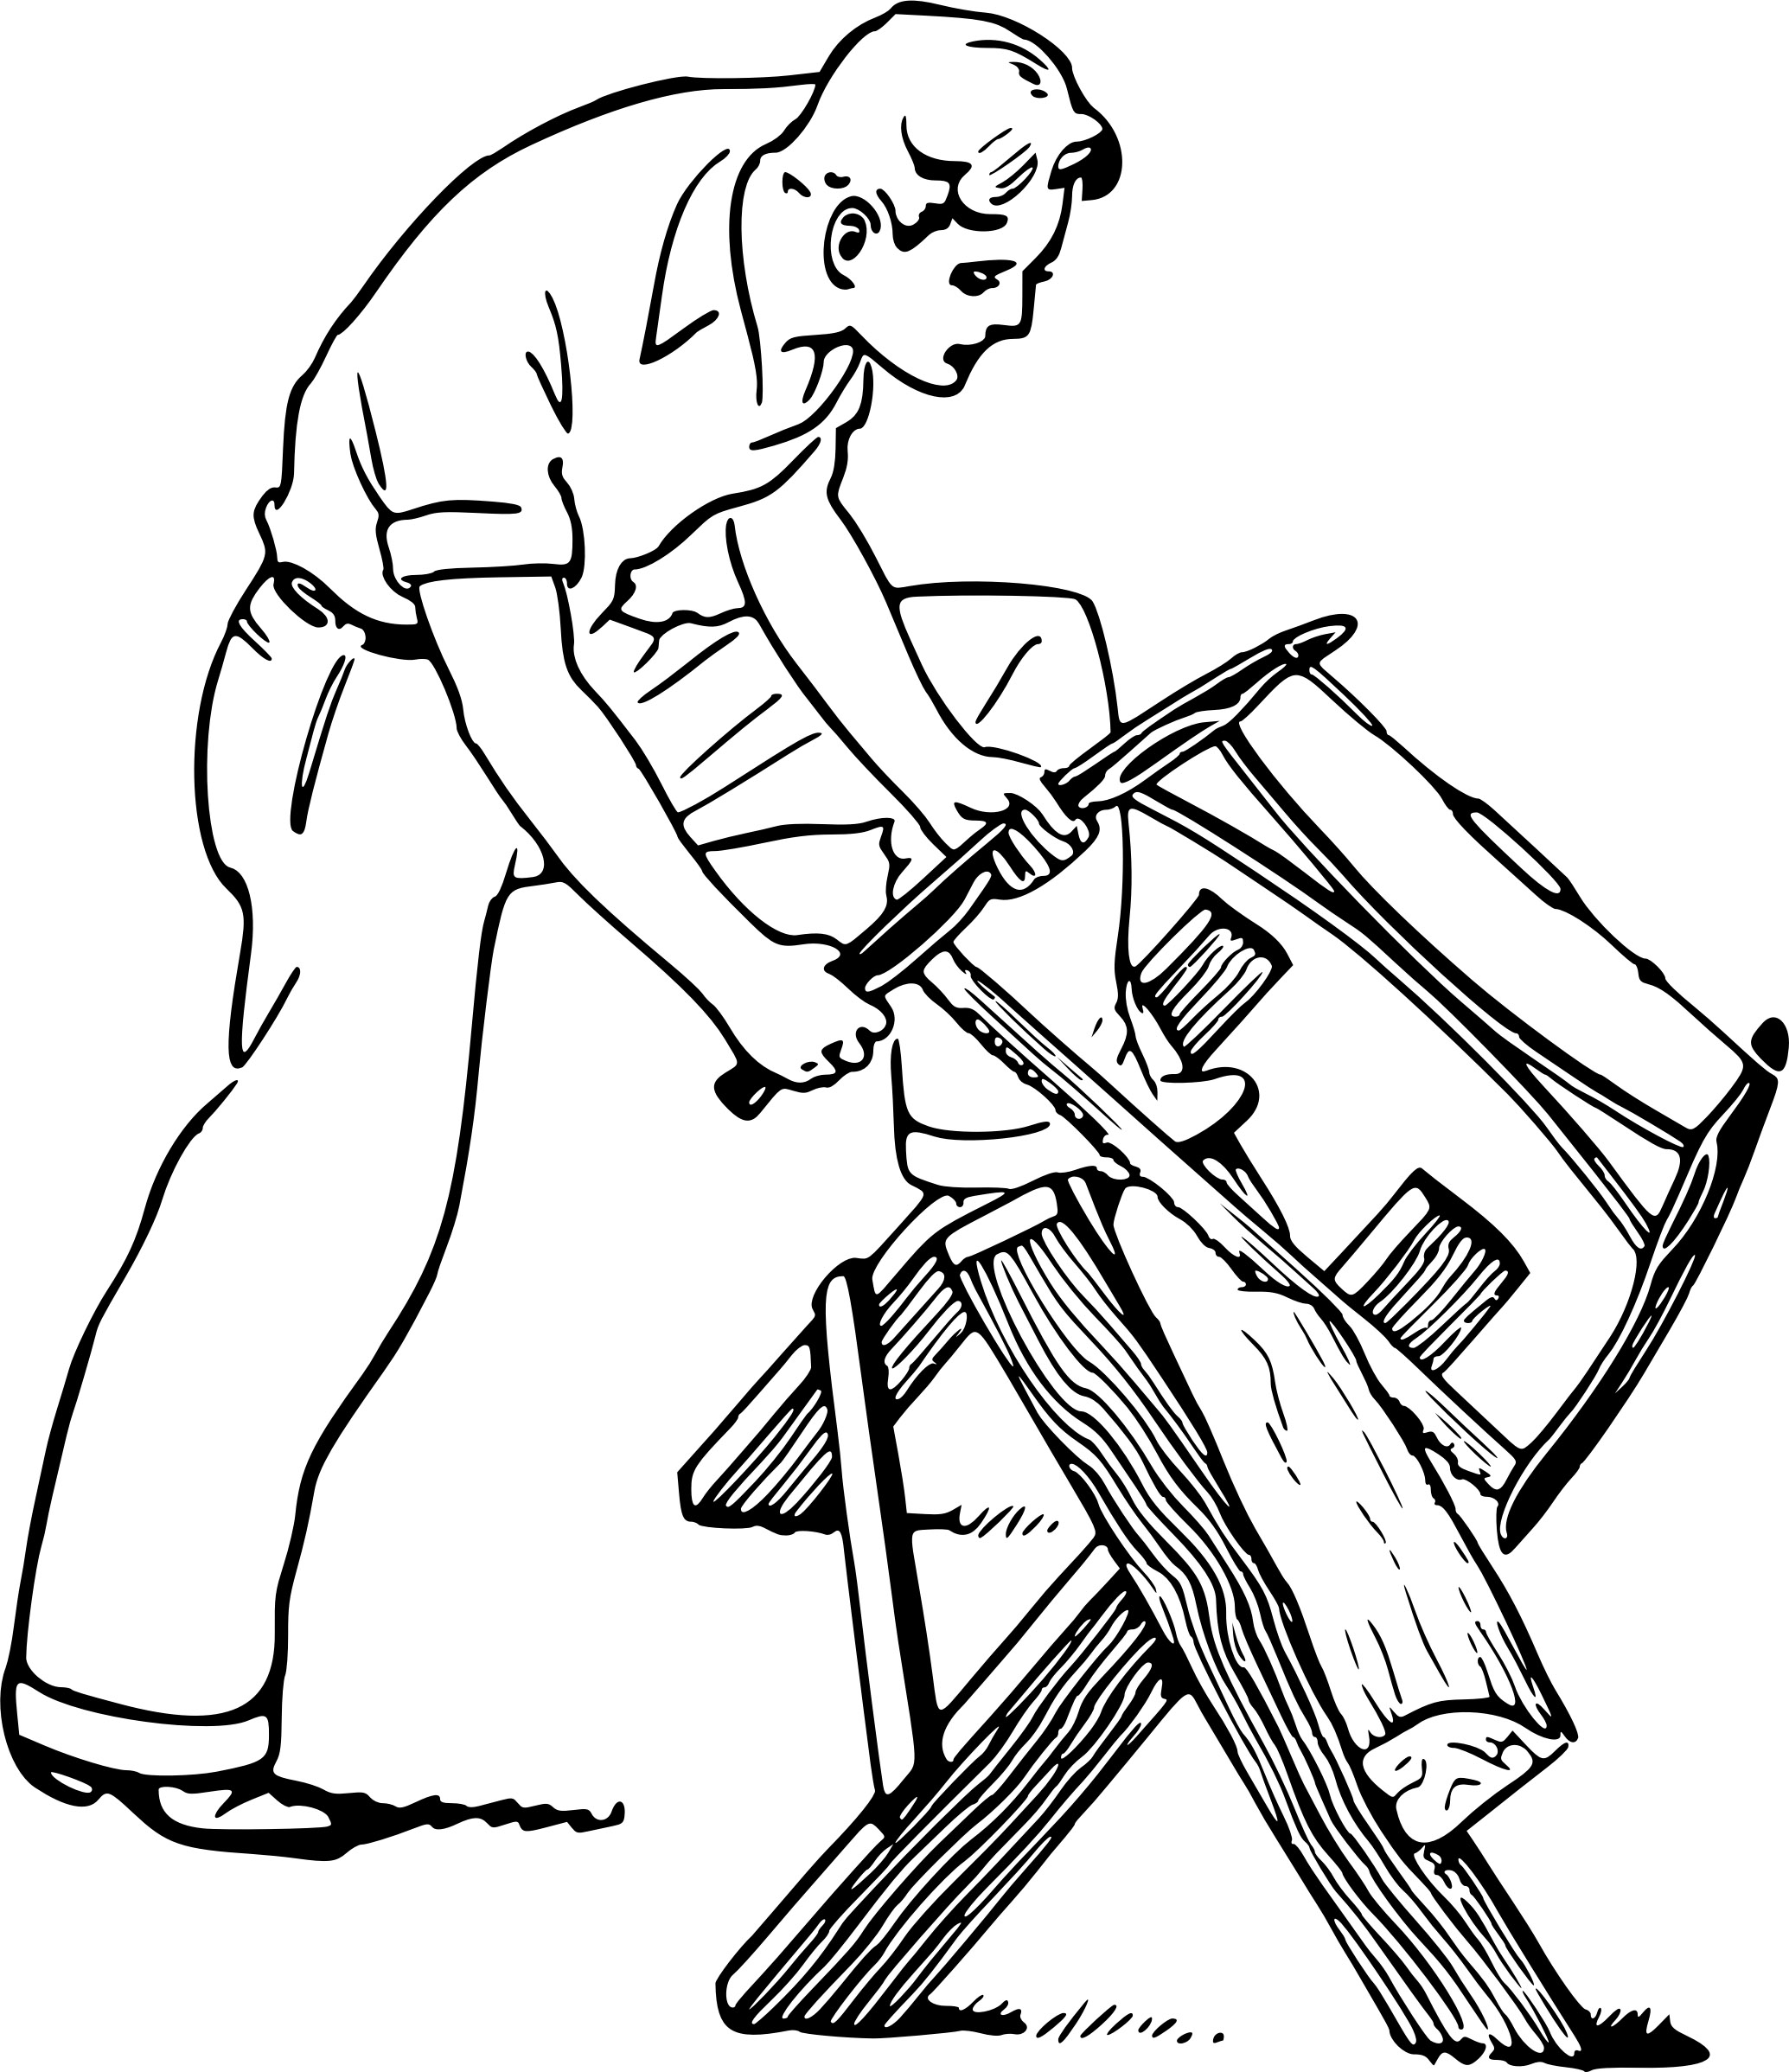 Man Sawing Wood Vector Clipart Image